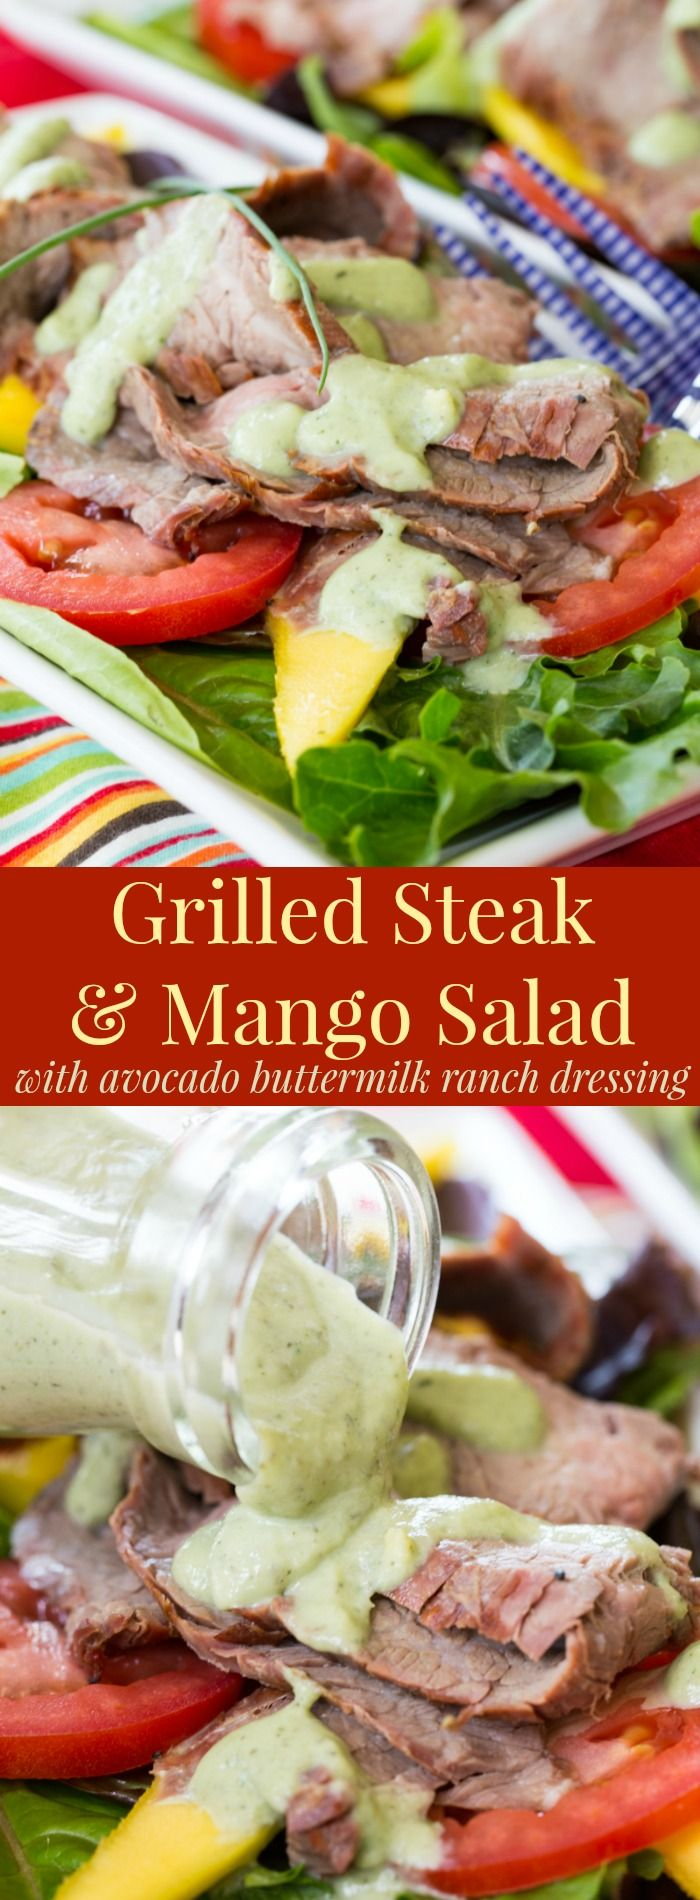 Grilled Steak Mango Salad with Avocado Buttermilk Ranch Dressing - add beef to your salads for a hearty, healthy, and satisfying summer meal. #BeefUpYourSalad with #BestBeef @certangusbeef #ad